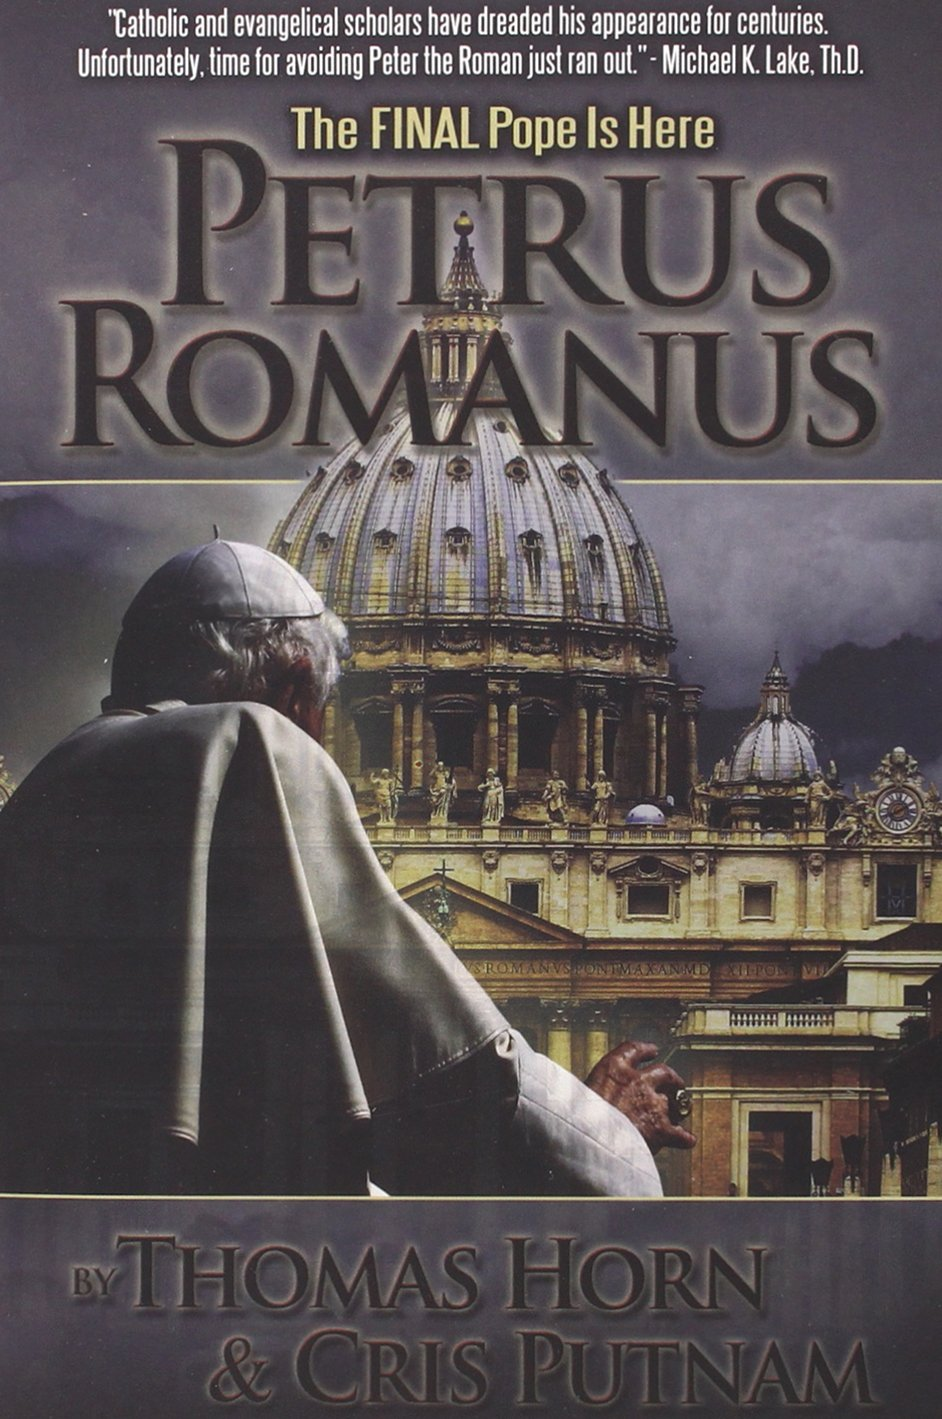 Petrus Romanus: The Final Pope Is Here: Amazon.es: Thomas Horn, Cris Putnam: Libros en idiomas extranjeros